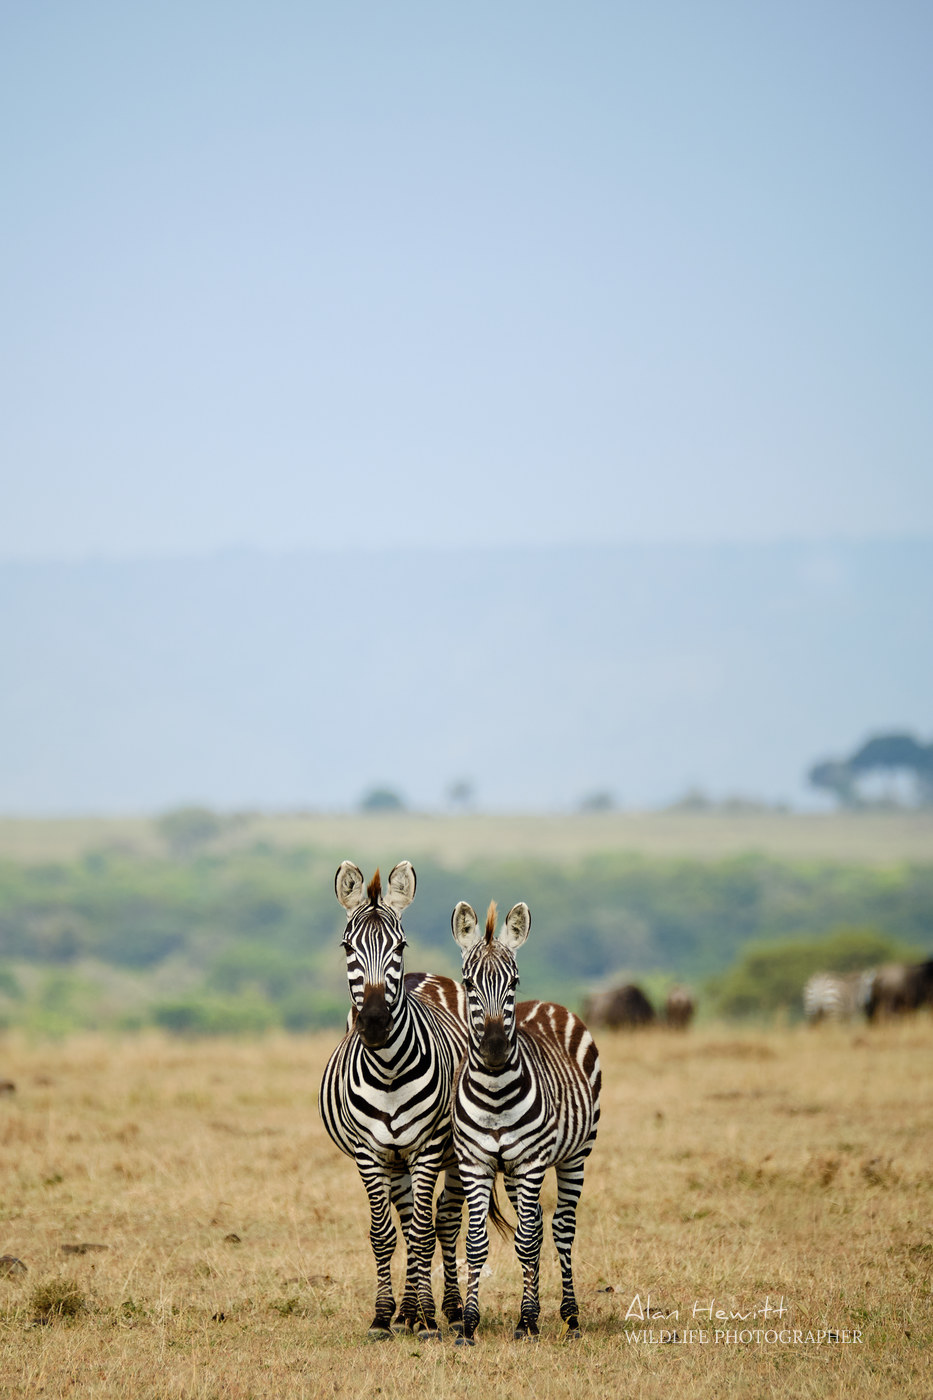 Zebra Alan Hewitt Photography